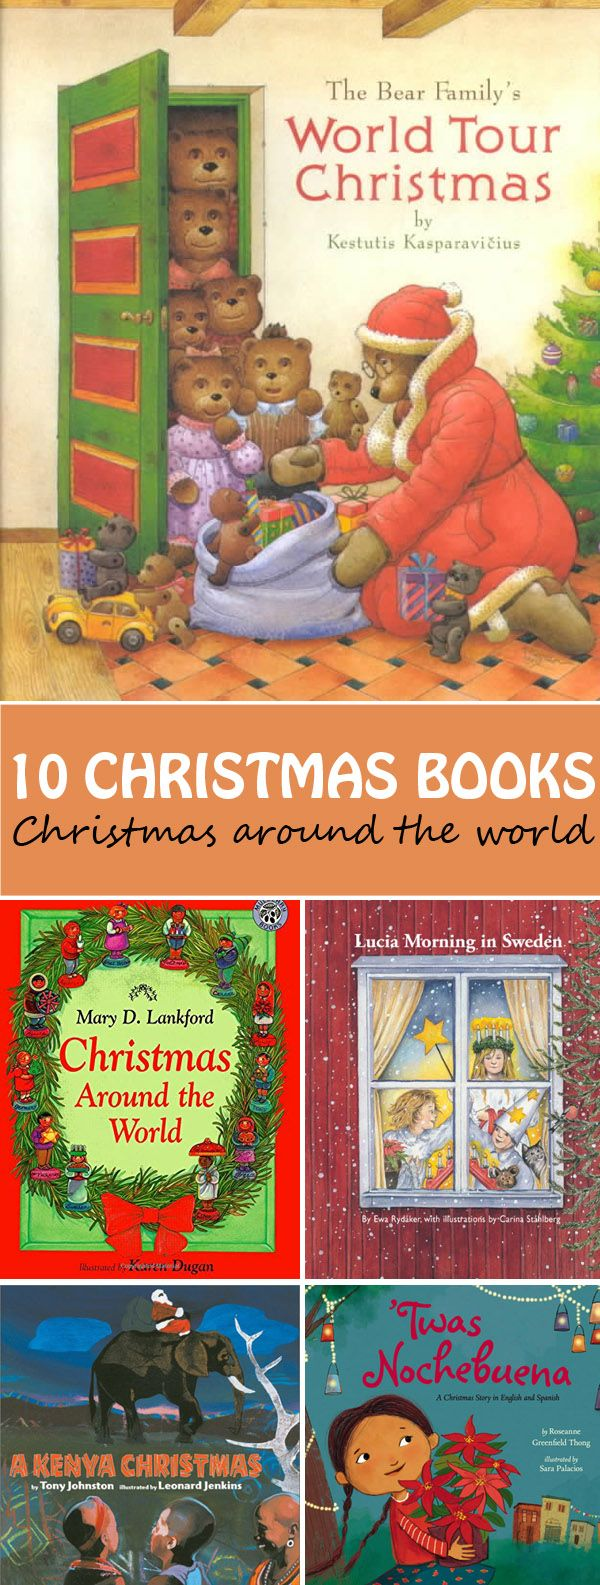 10 Christmas books for kids. Learn about the Christmas